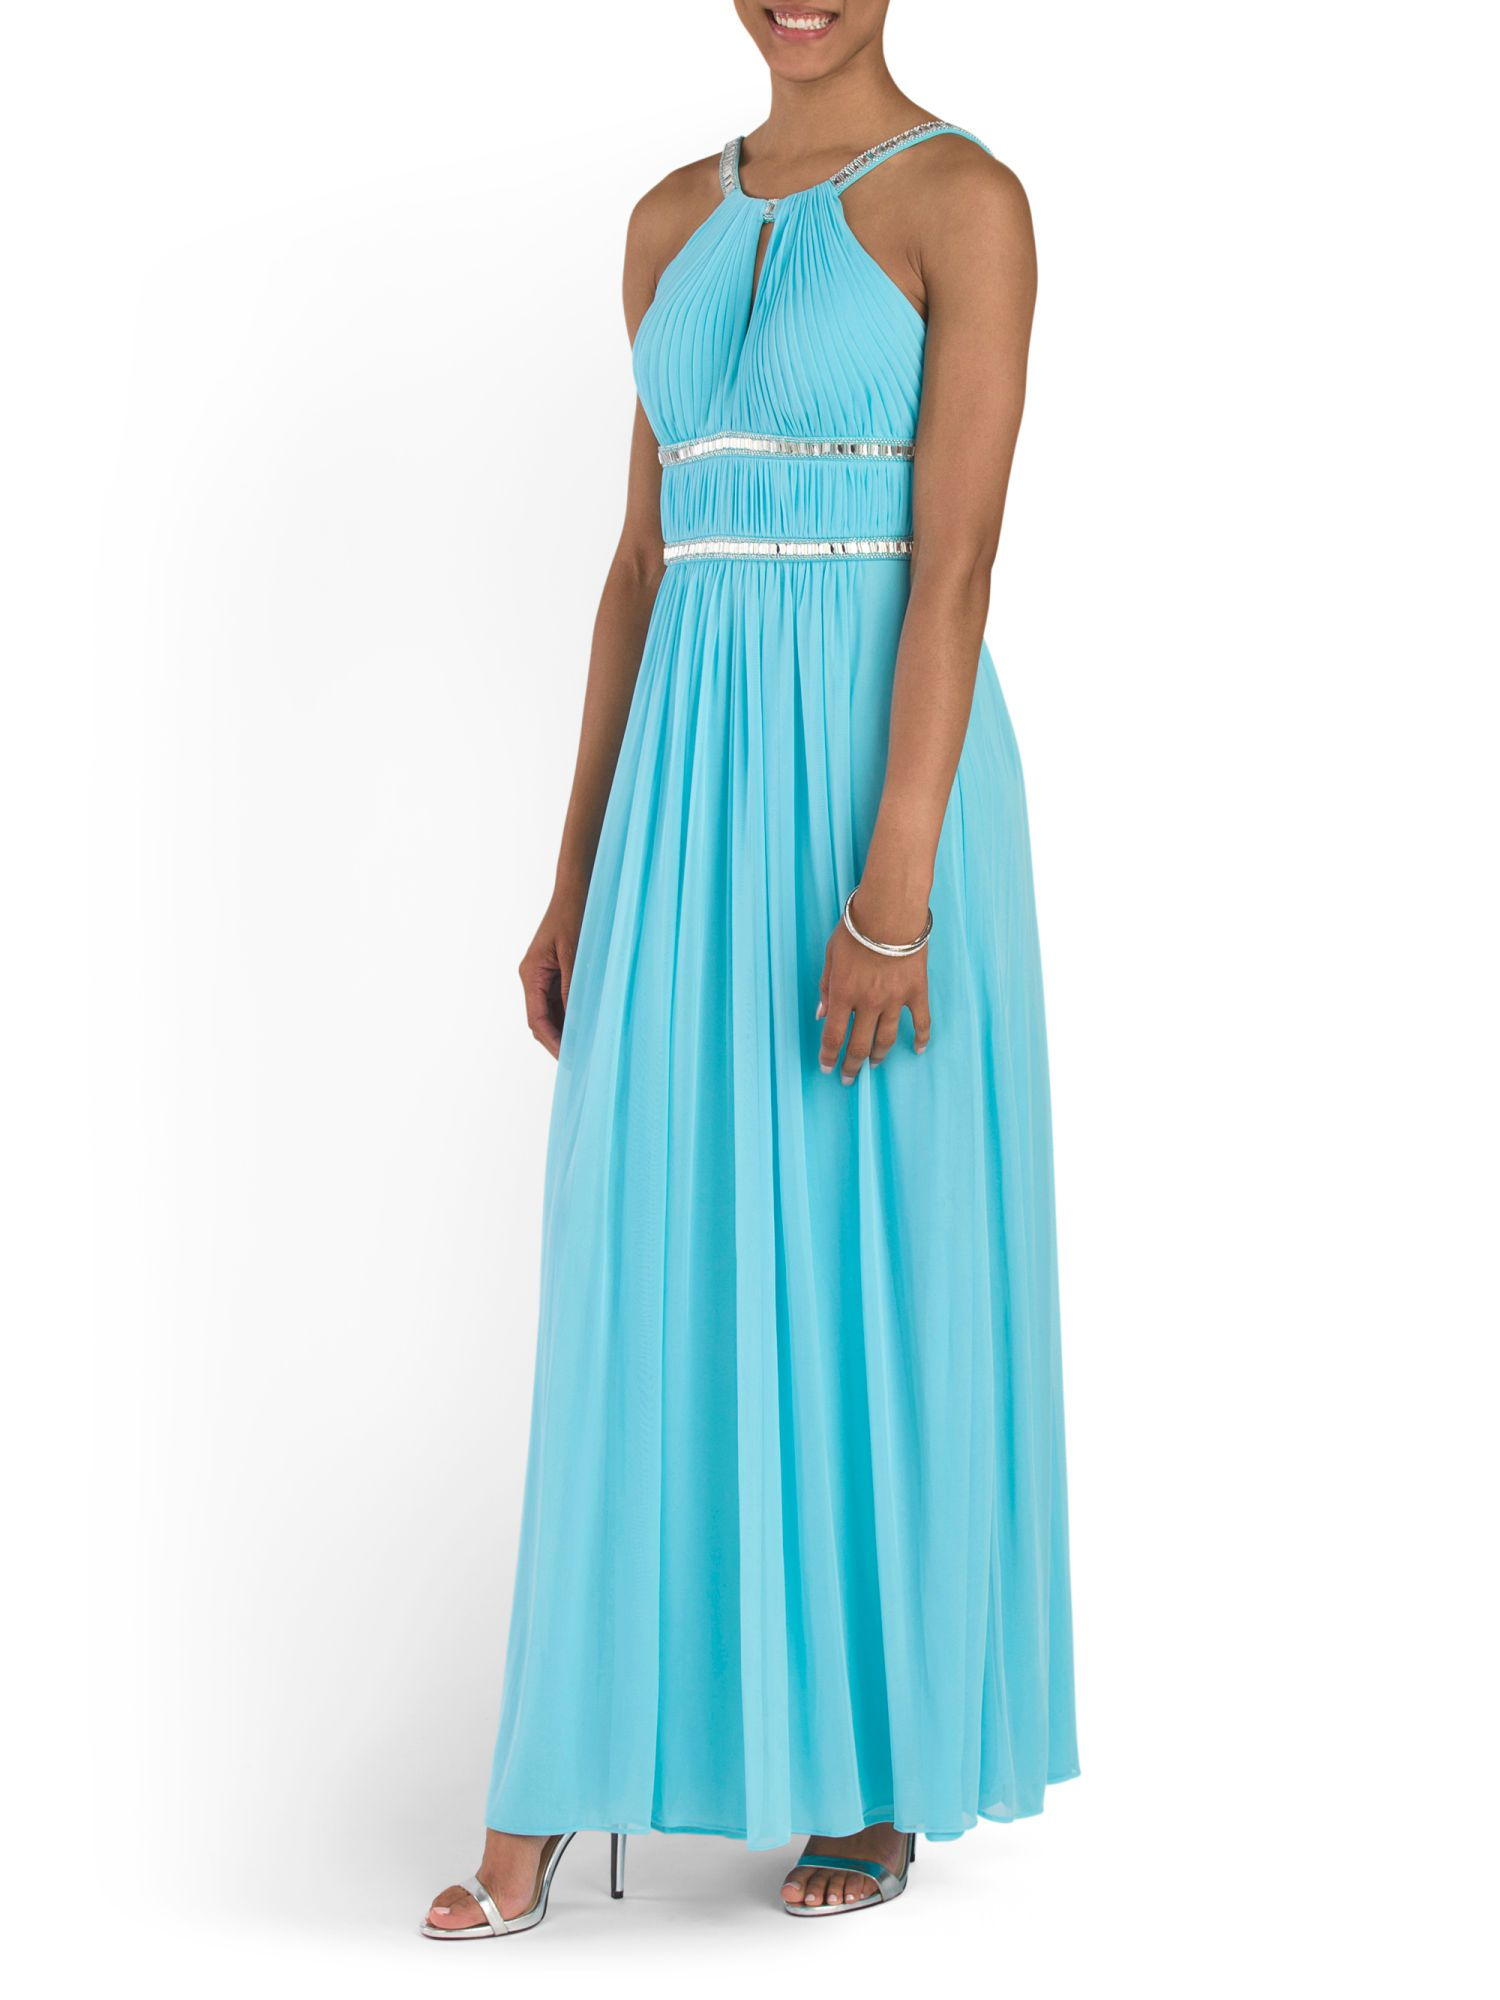 Tj Maxx Online Very Pretty Formalsemi Formal Dresses For Janice